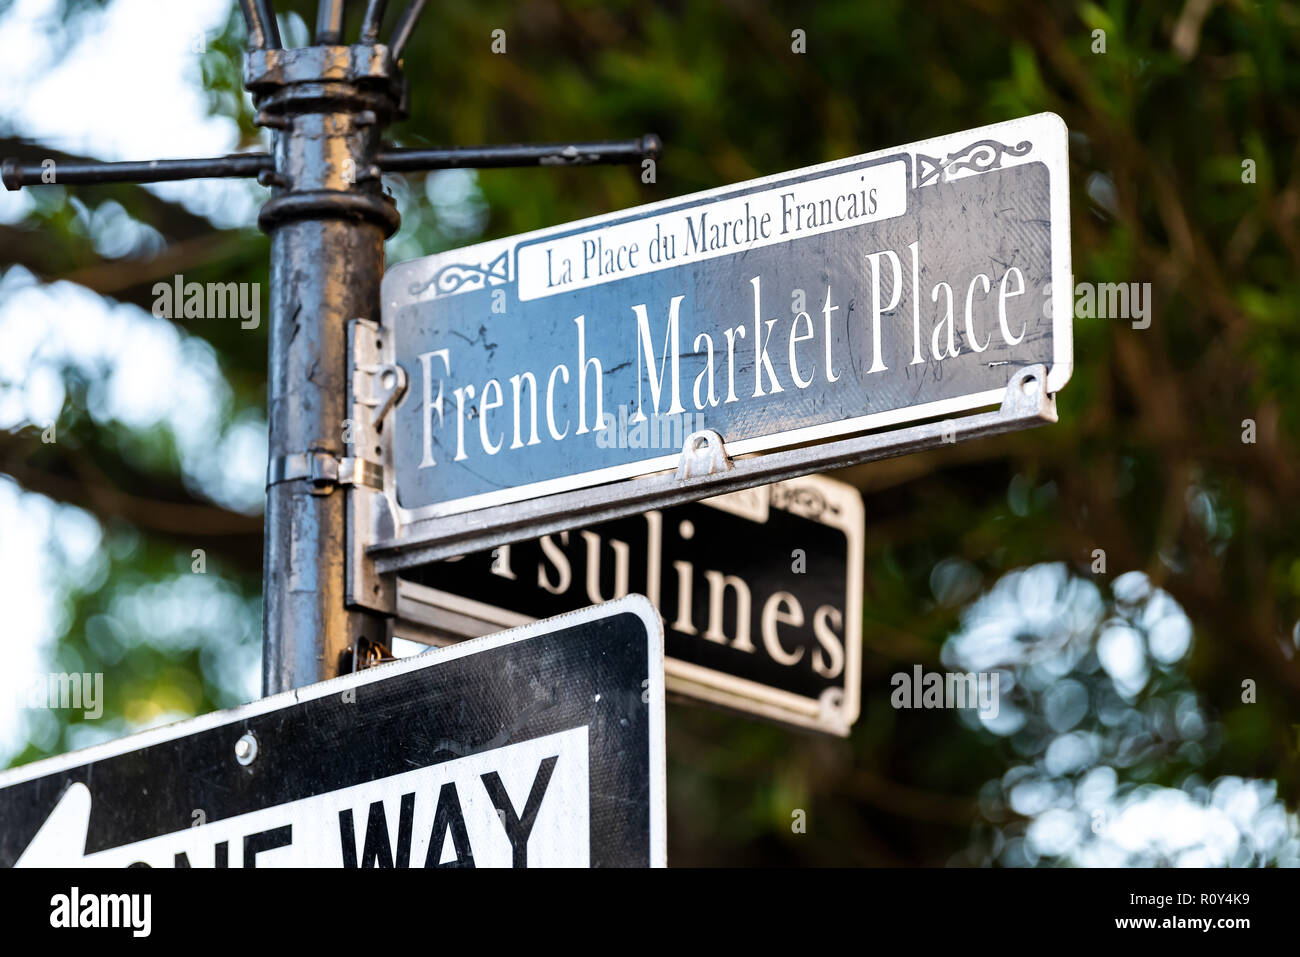 French town road sign stock photos & french town road sign stock